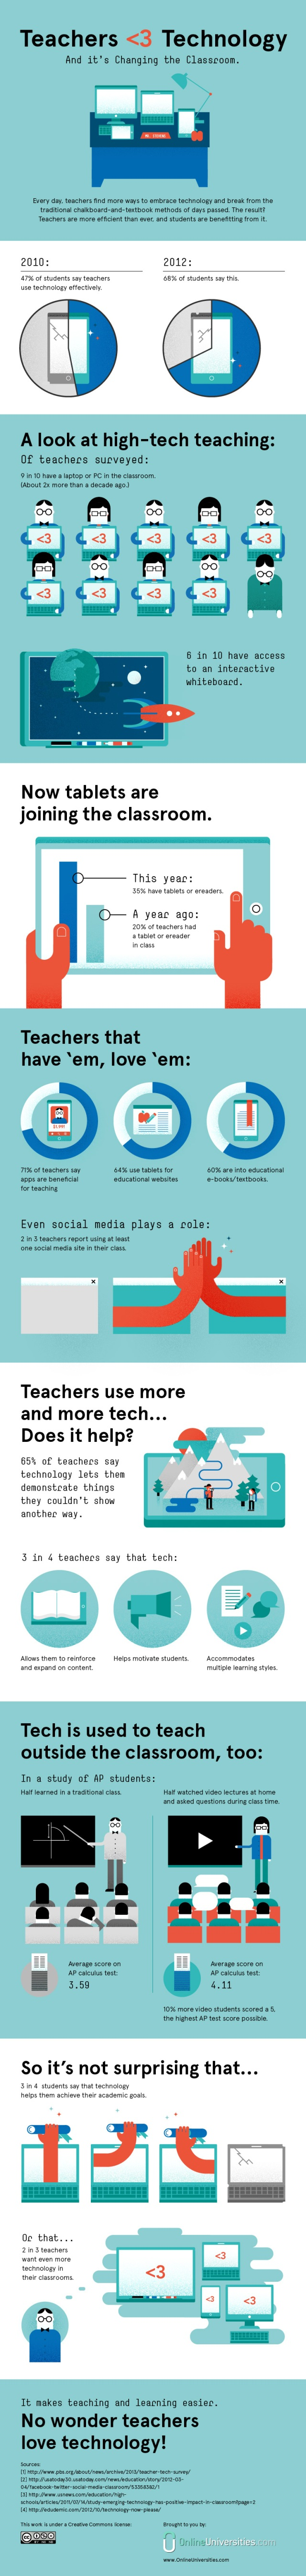 infographic TeachersloveTechFinal